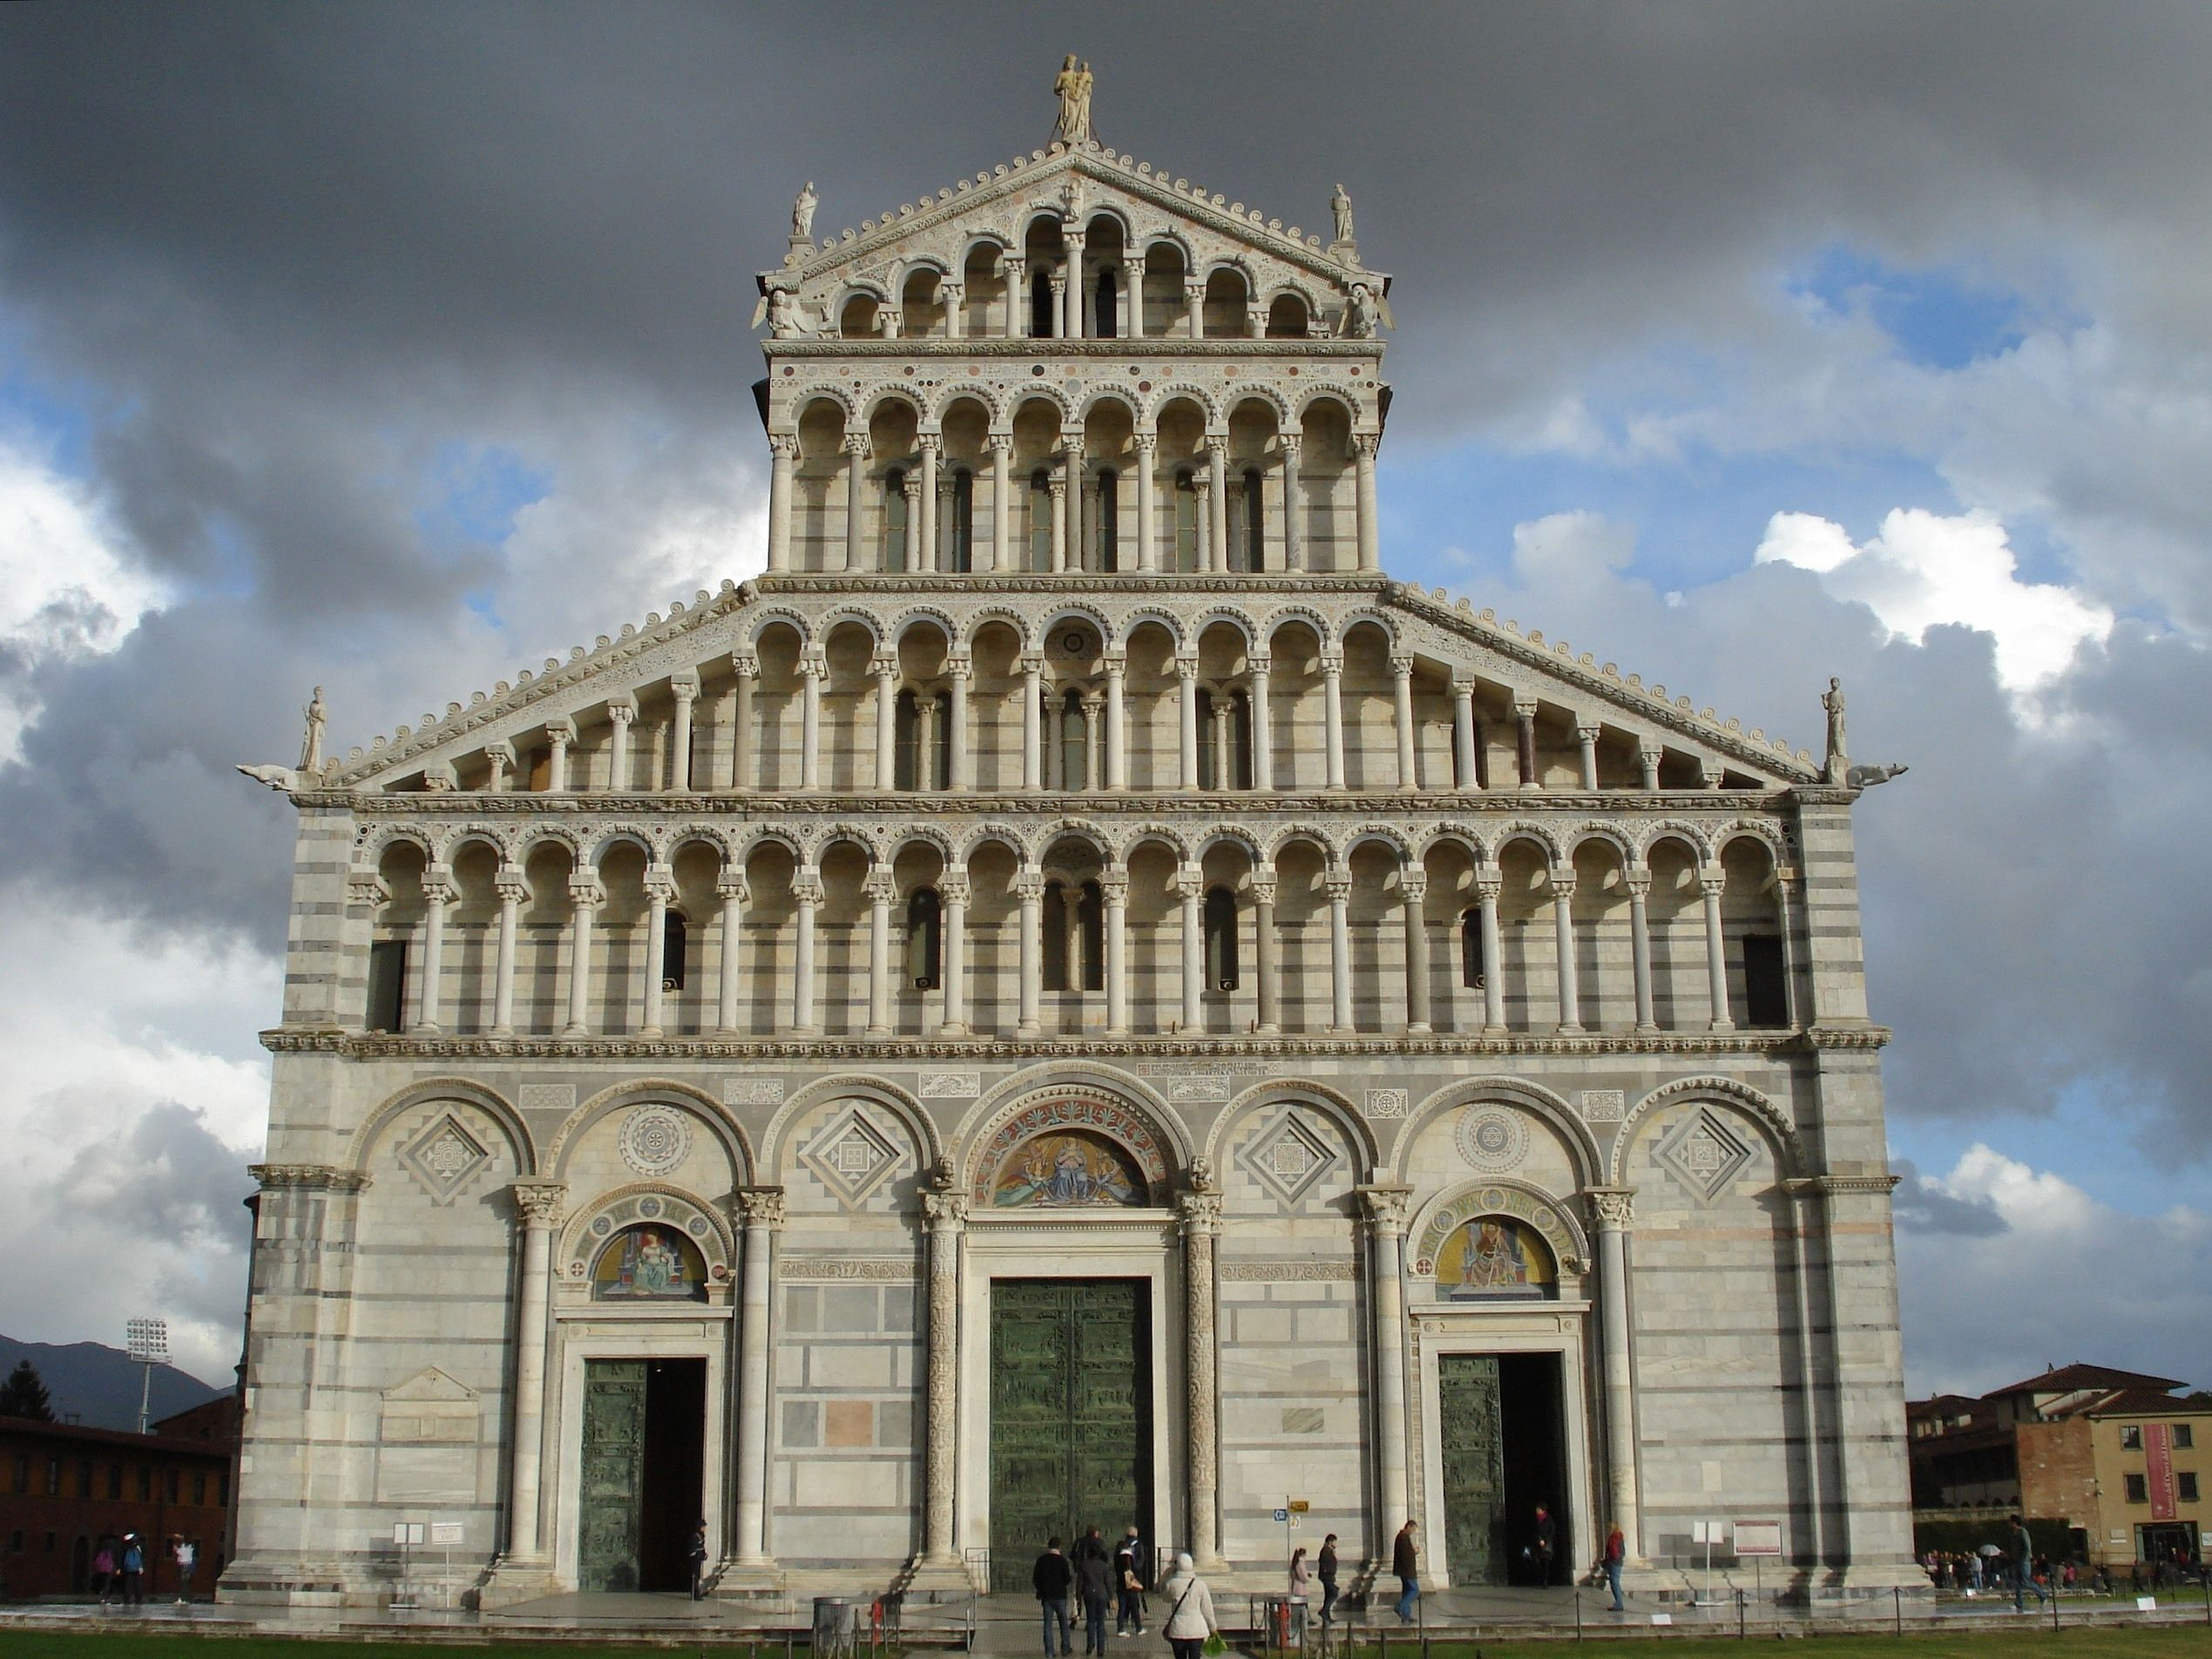 ROMANESQUE ARCHITECTURE, Italy - Facade of the cathedral of Pisa, begun 1063. The cathedral (Duomo) of Pisa was founded in 1063 after the victory of the Pisan fleet over the Saracens near Palermo. Stylistically it was a variation of the Mediterranean basilica plan with influence from Near Eastern architecture. The building has also Lombard overtones, especially in the facade with its four registers of freestanding gallery work.